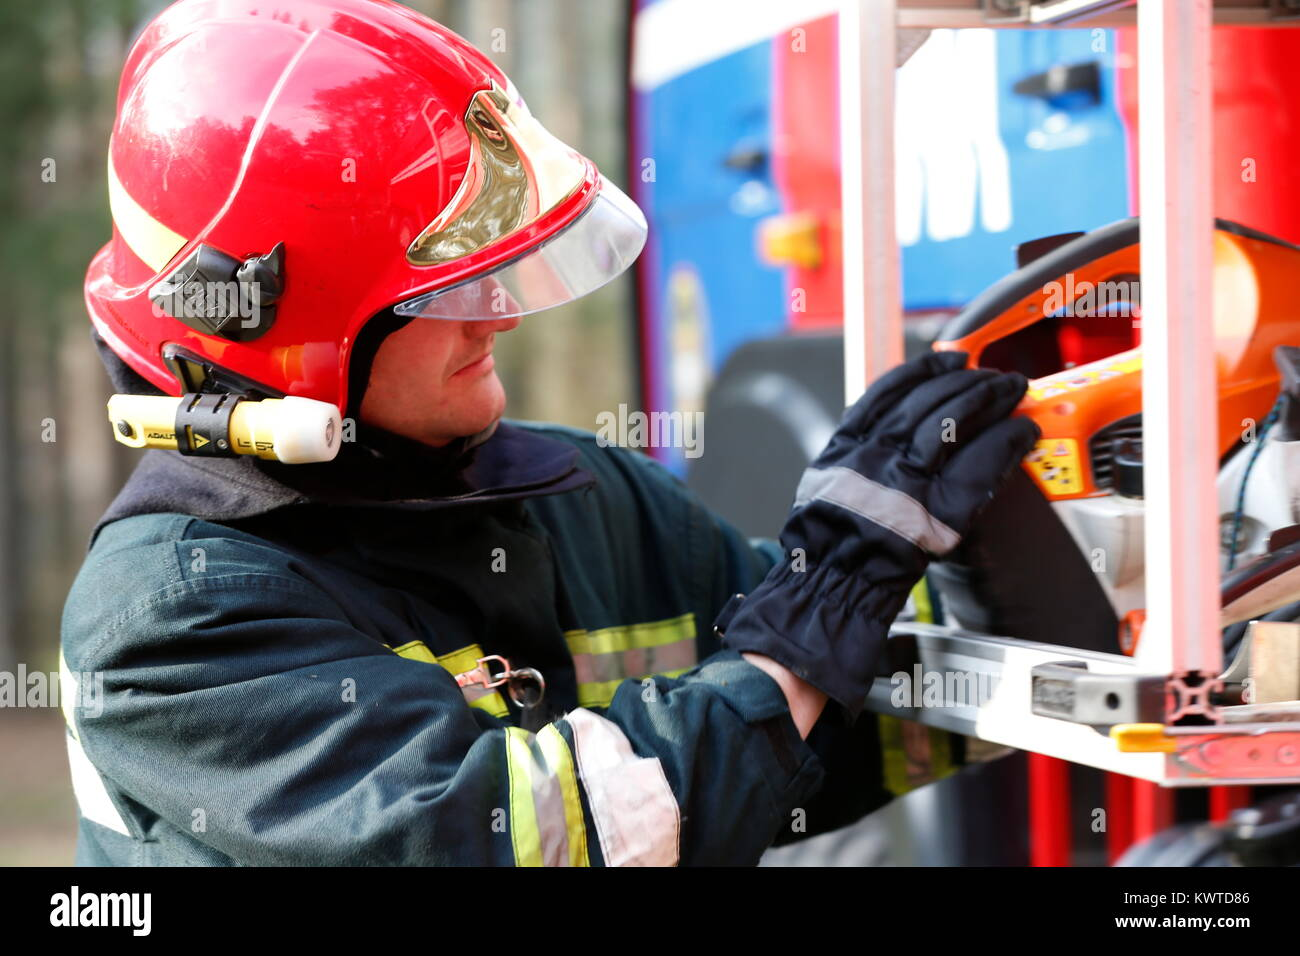 Belarus, Gomel city. Firefighting of the forest 06.04.2017.Firefighter retrieves fire hoses.The brave firefighter. - Stock Image